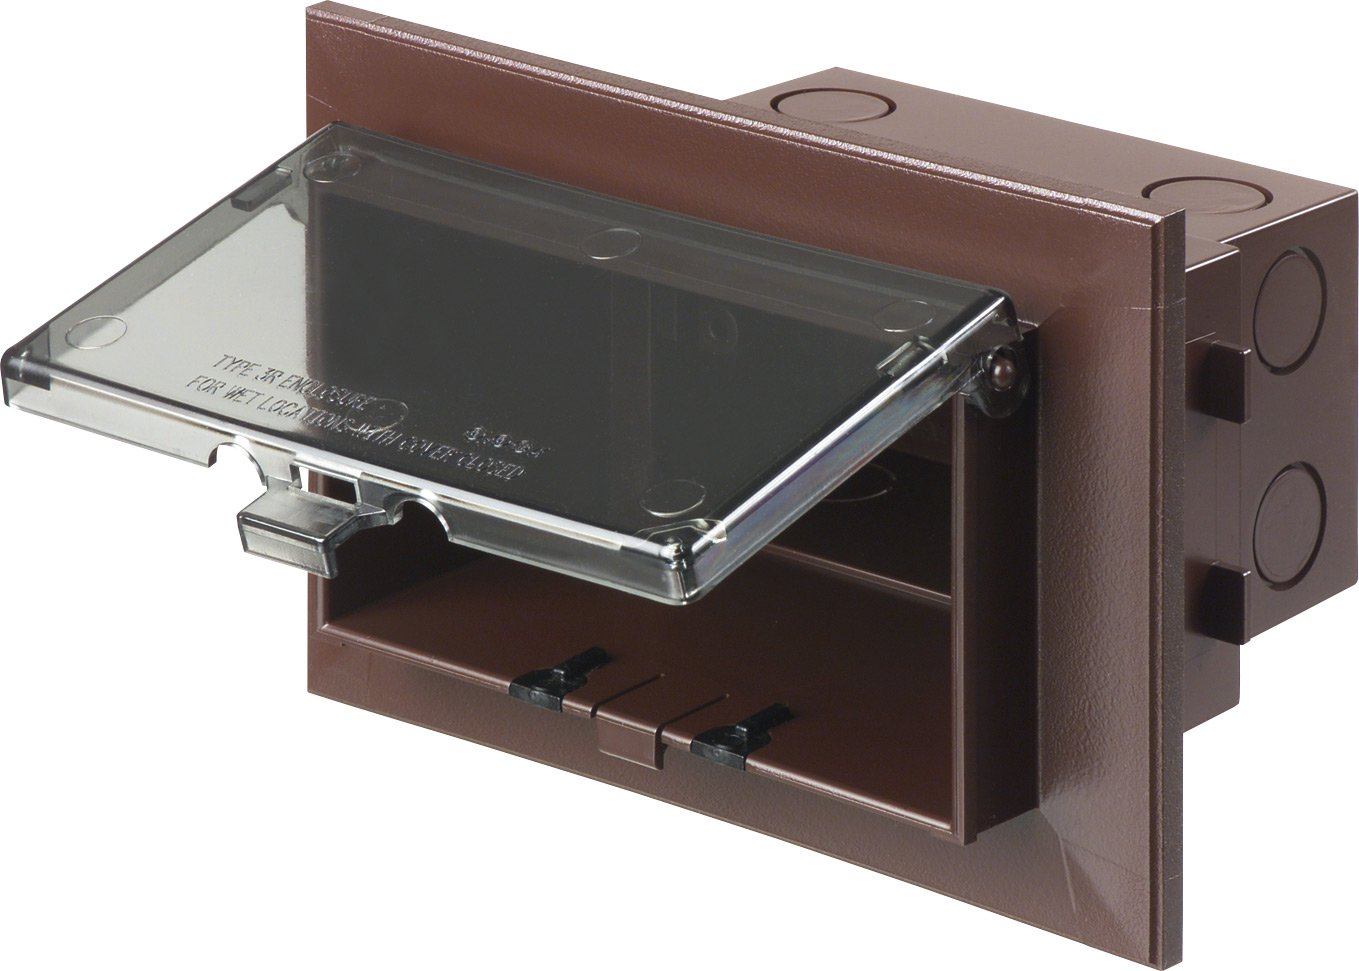 Arlington DVB1BR-1 Low Profile IN BOX Electrical Box with Adapter Sleeve for New Brick Construction, 1-Gang, Vertical, Brown Cover/Brown Box